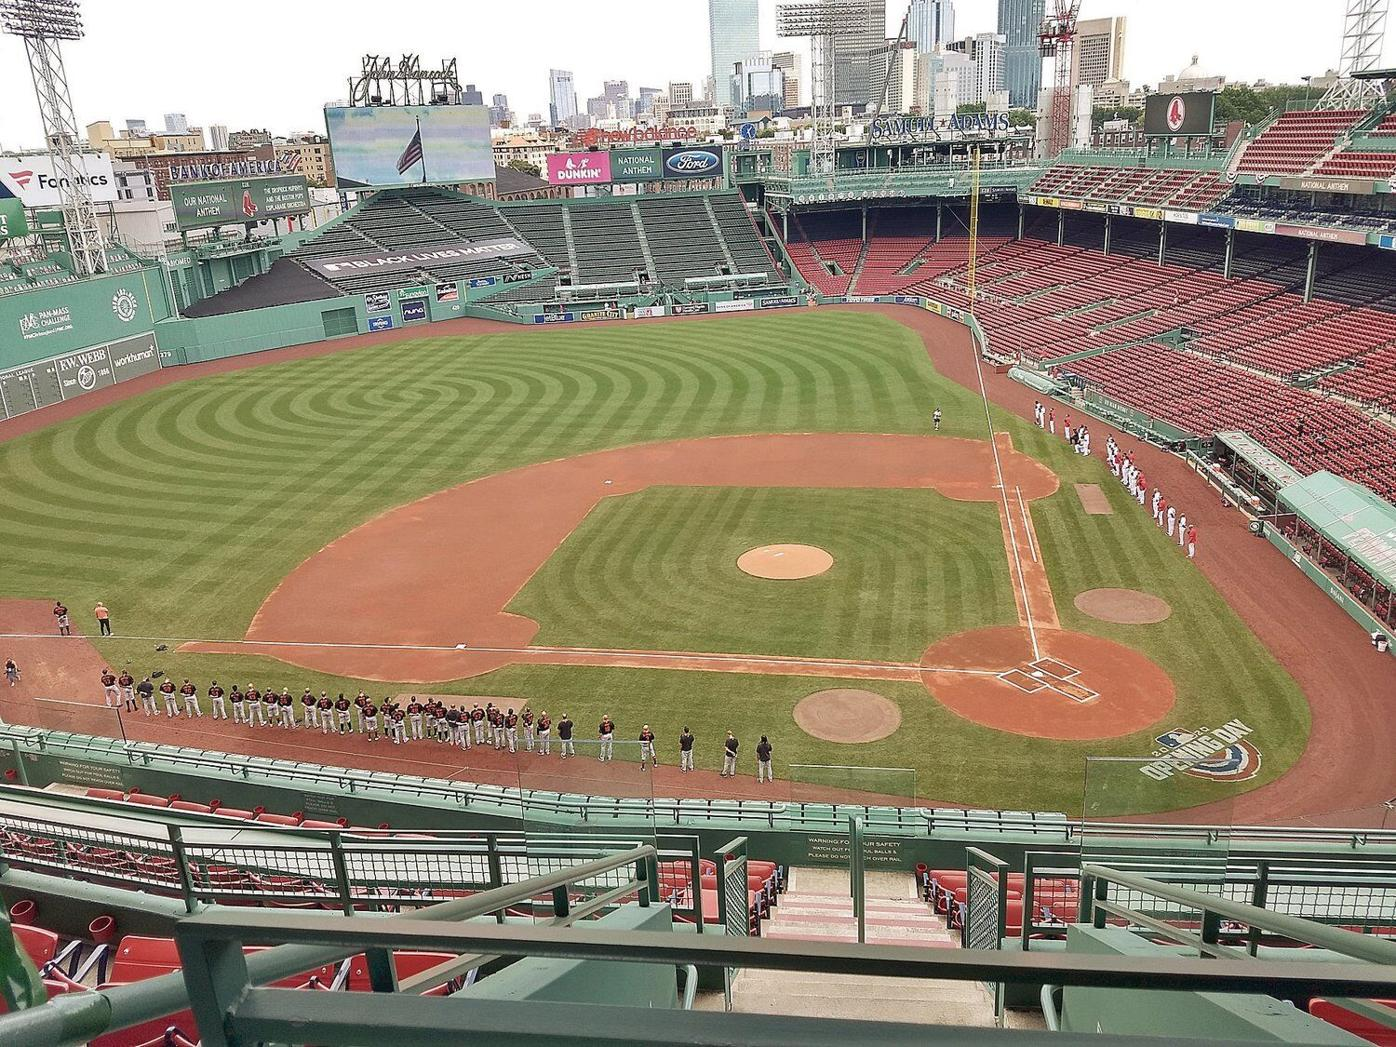 Howard Herman | Designated Hitter: Sights and sounds from fan-free Fenway Park